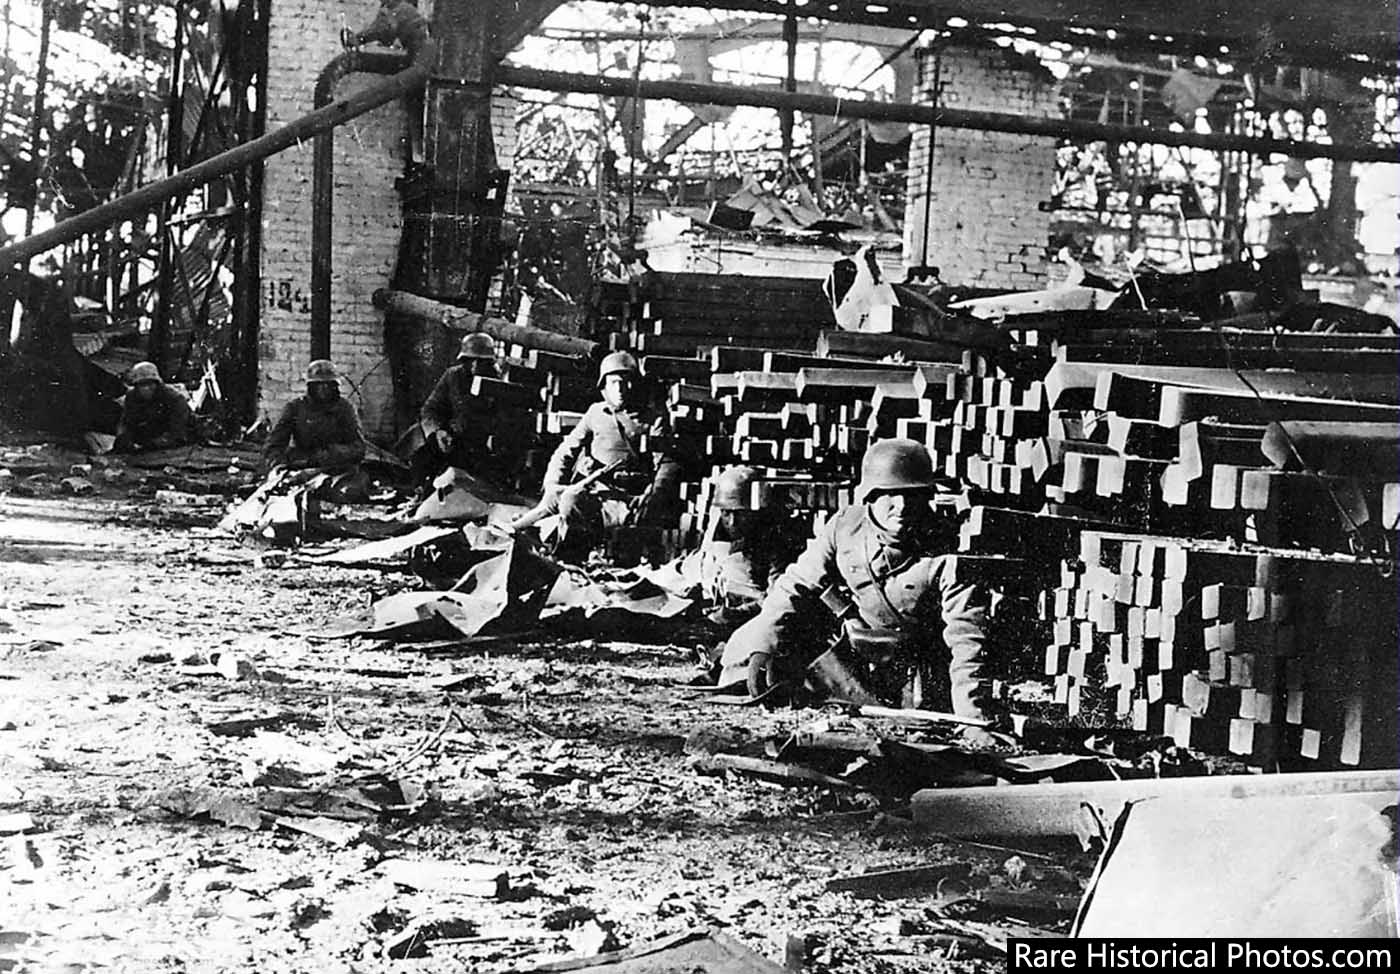 German infantrymen at the Red October factory.